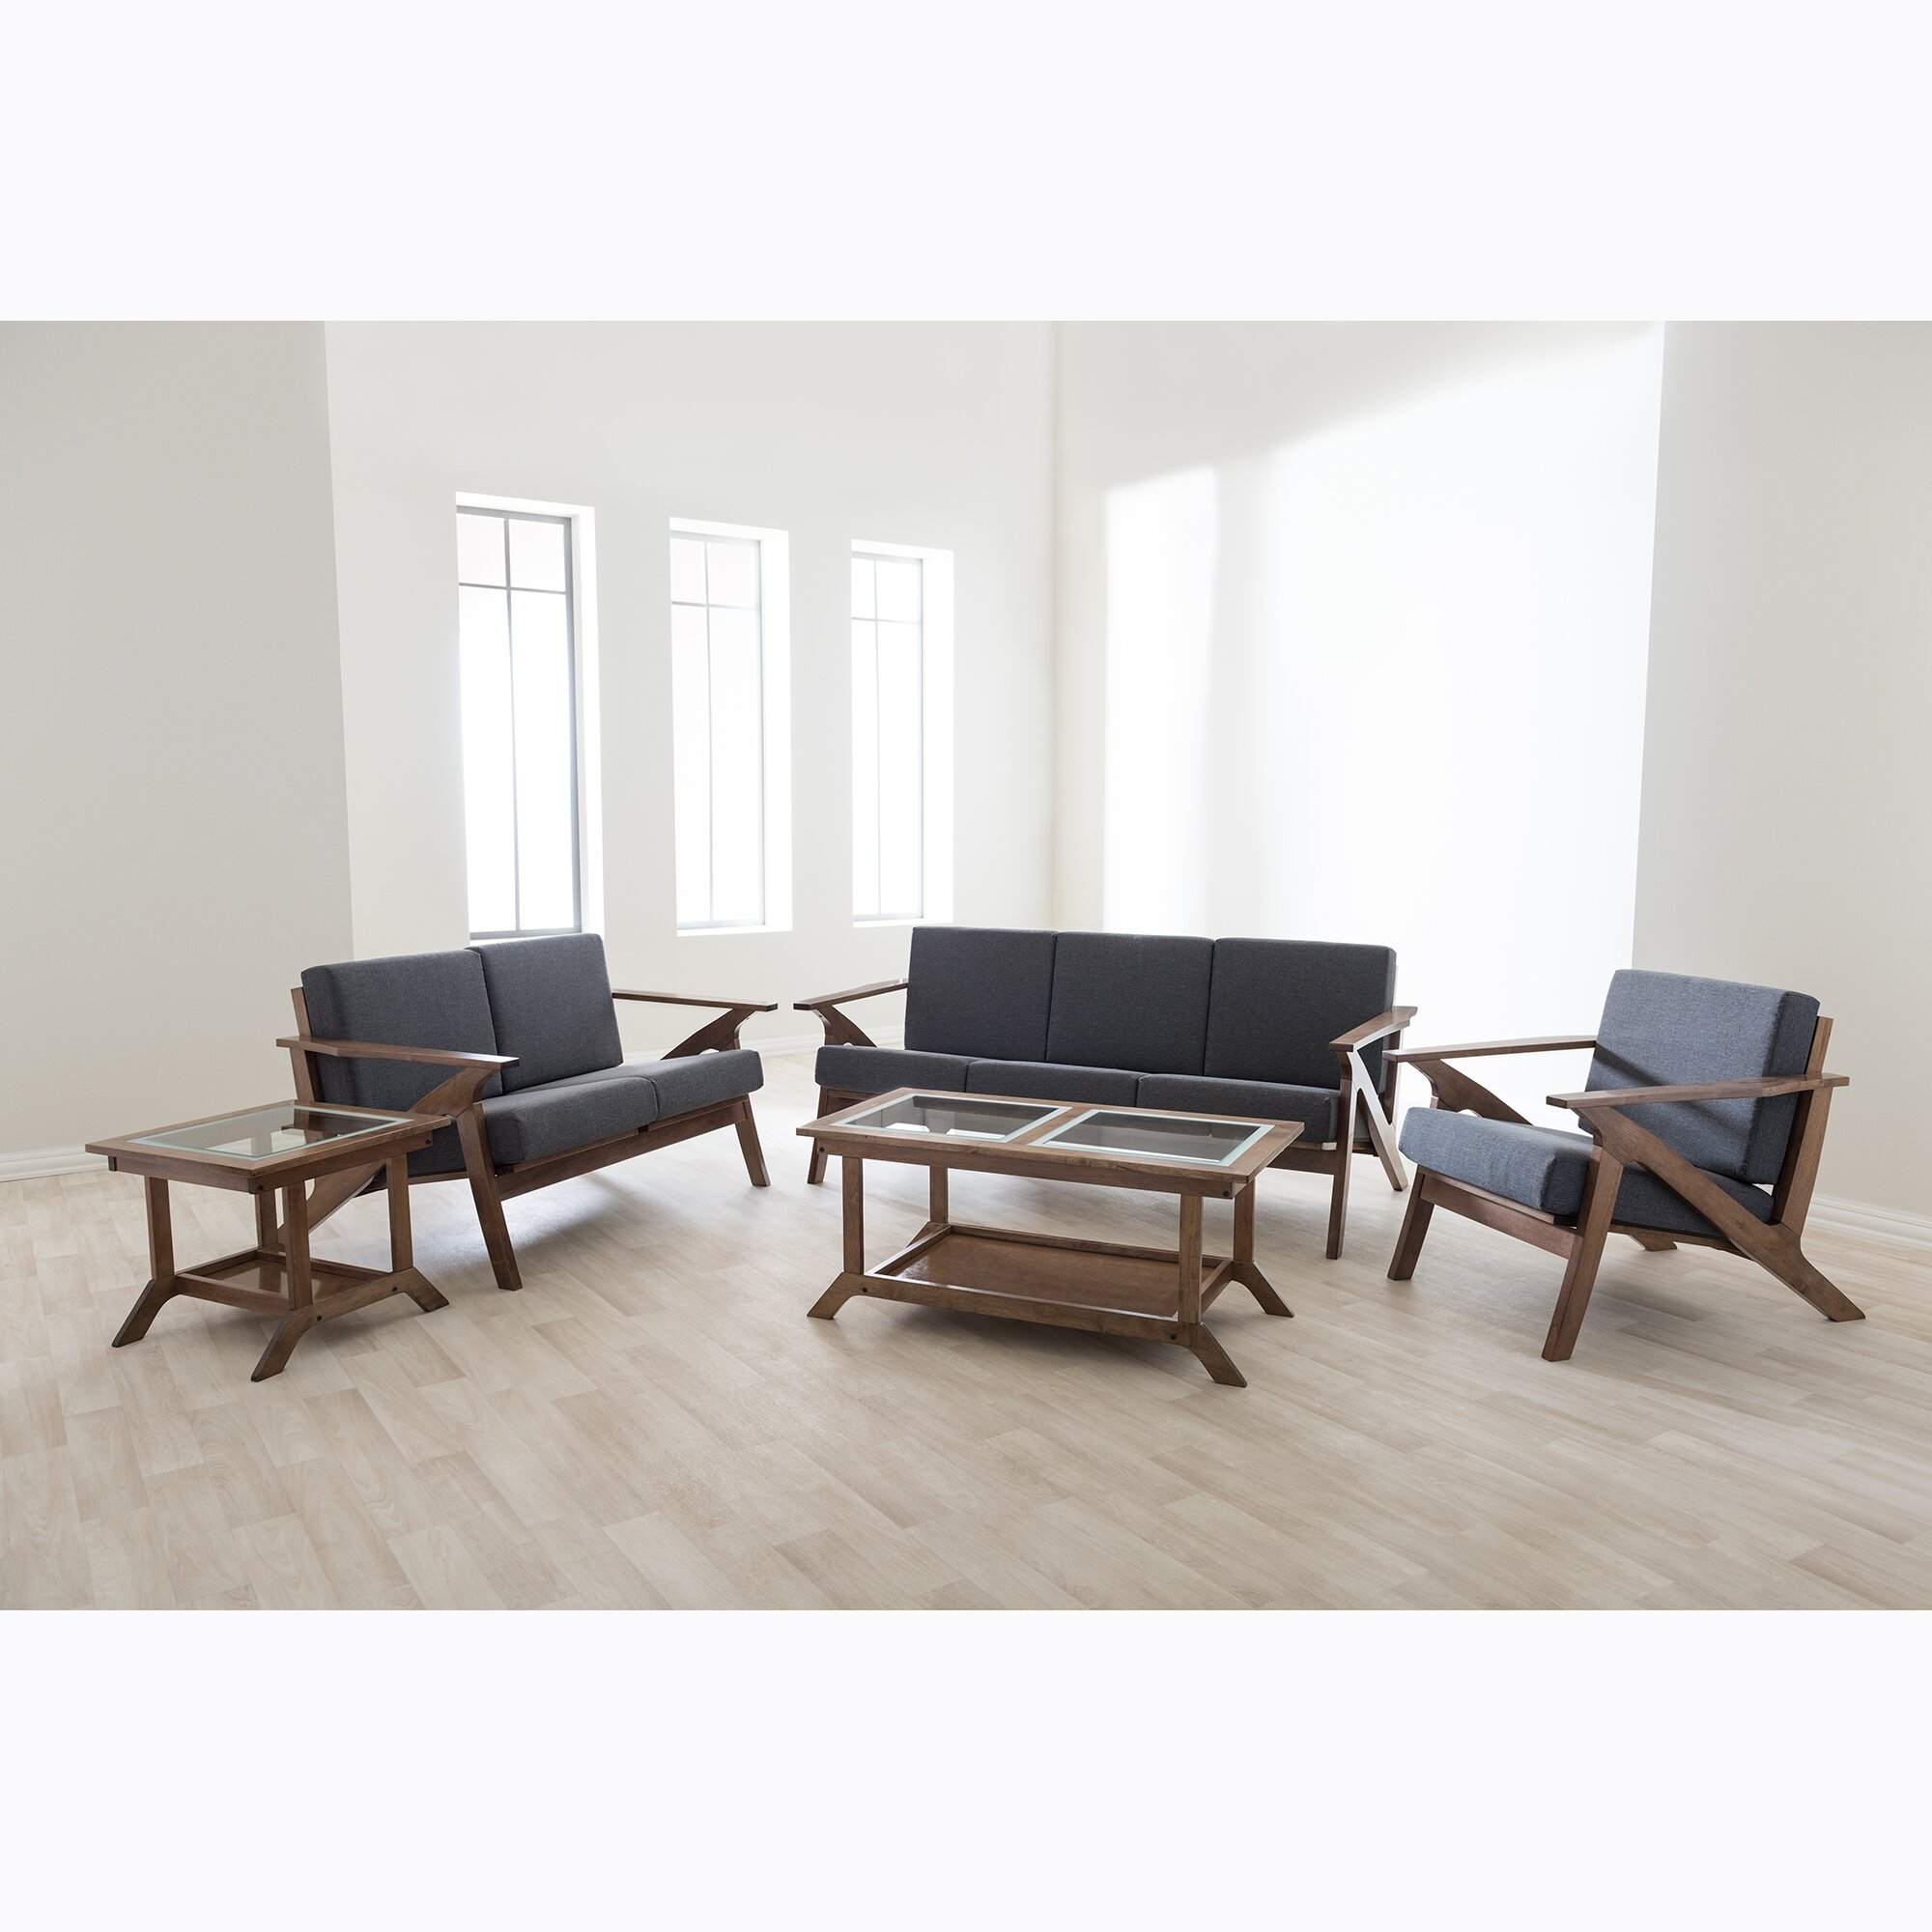 Wholesale interiors baxton studio 5 piece living room set for 5 piece living room furniture